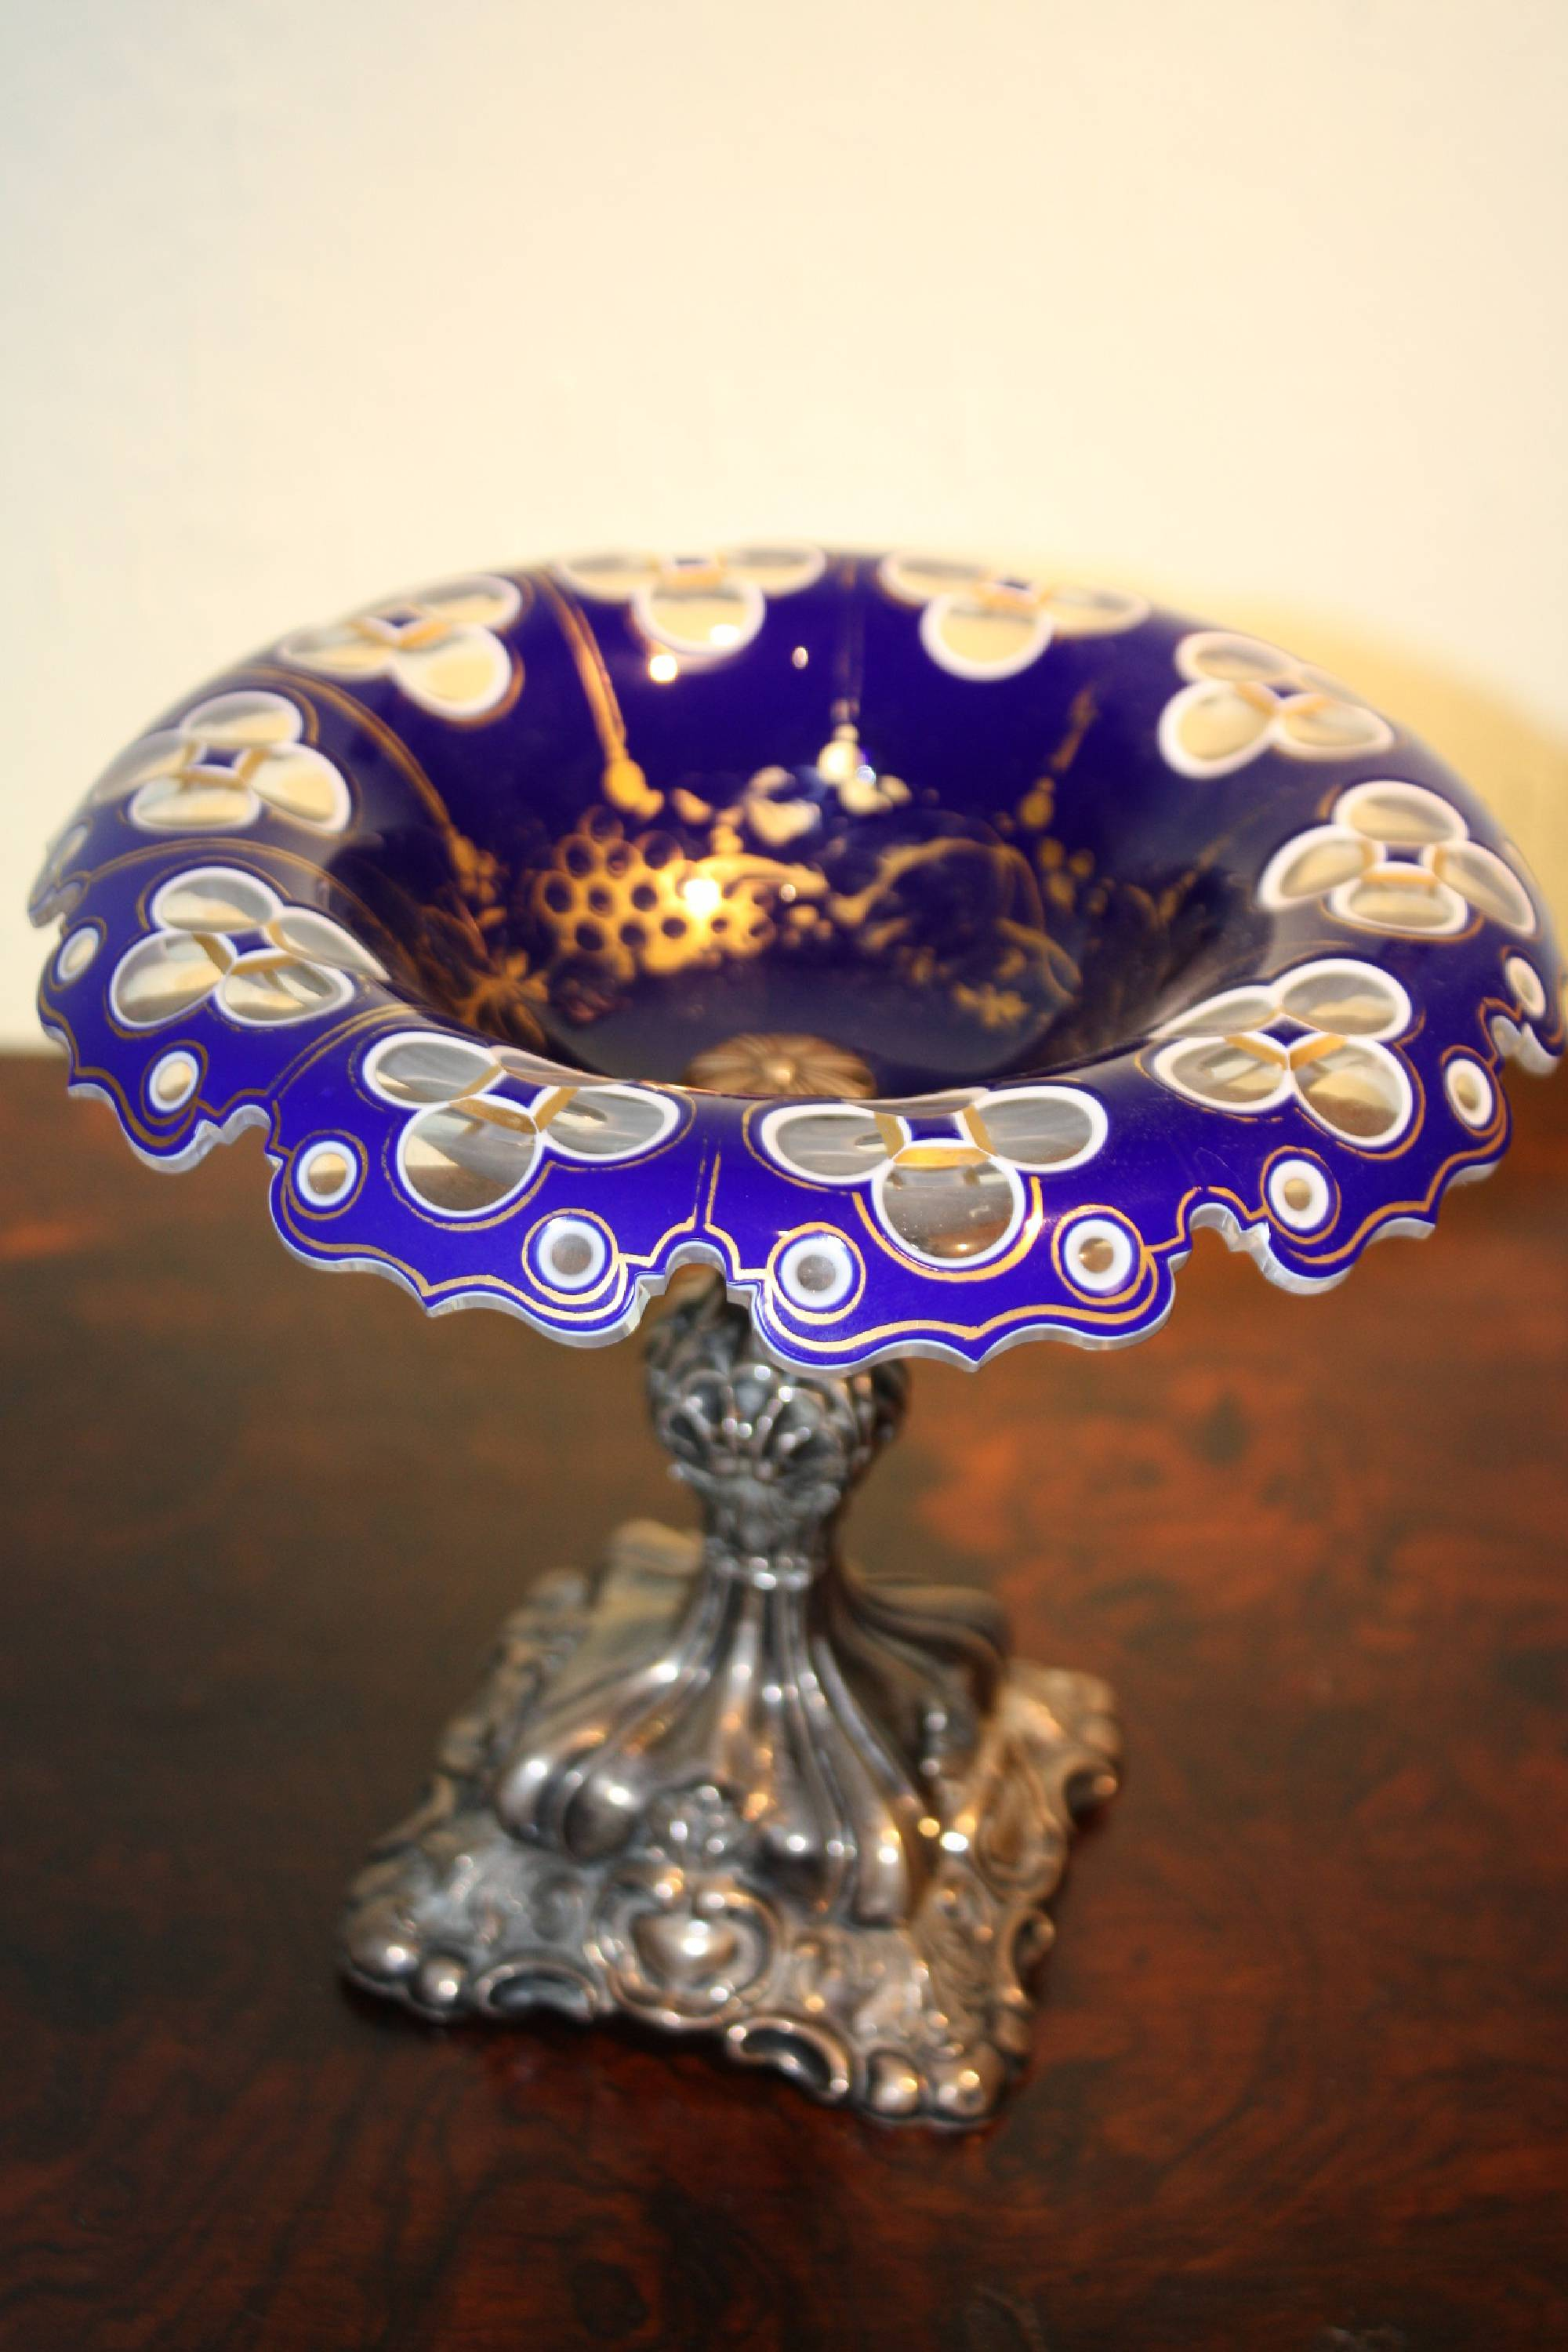 Antique Mid-19th century Bohemian ornate silver and glass footed bowl